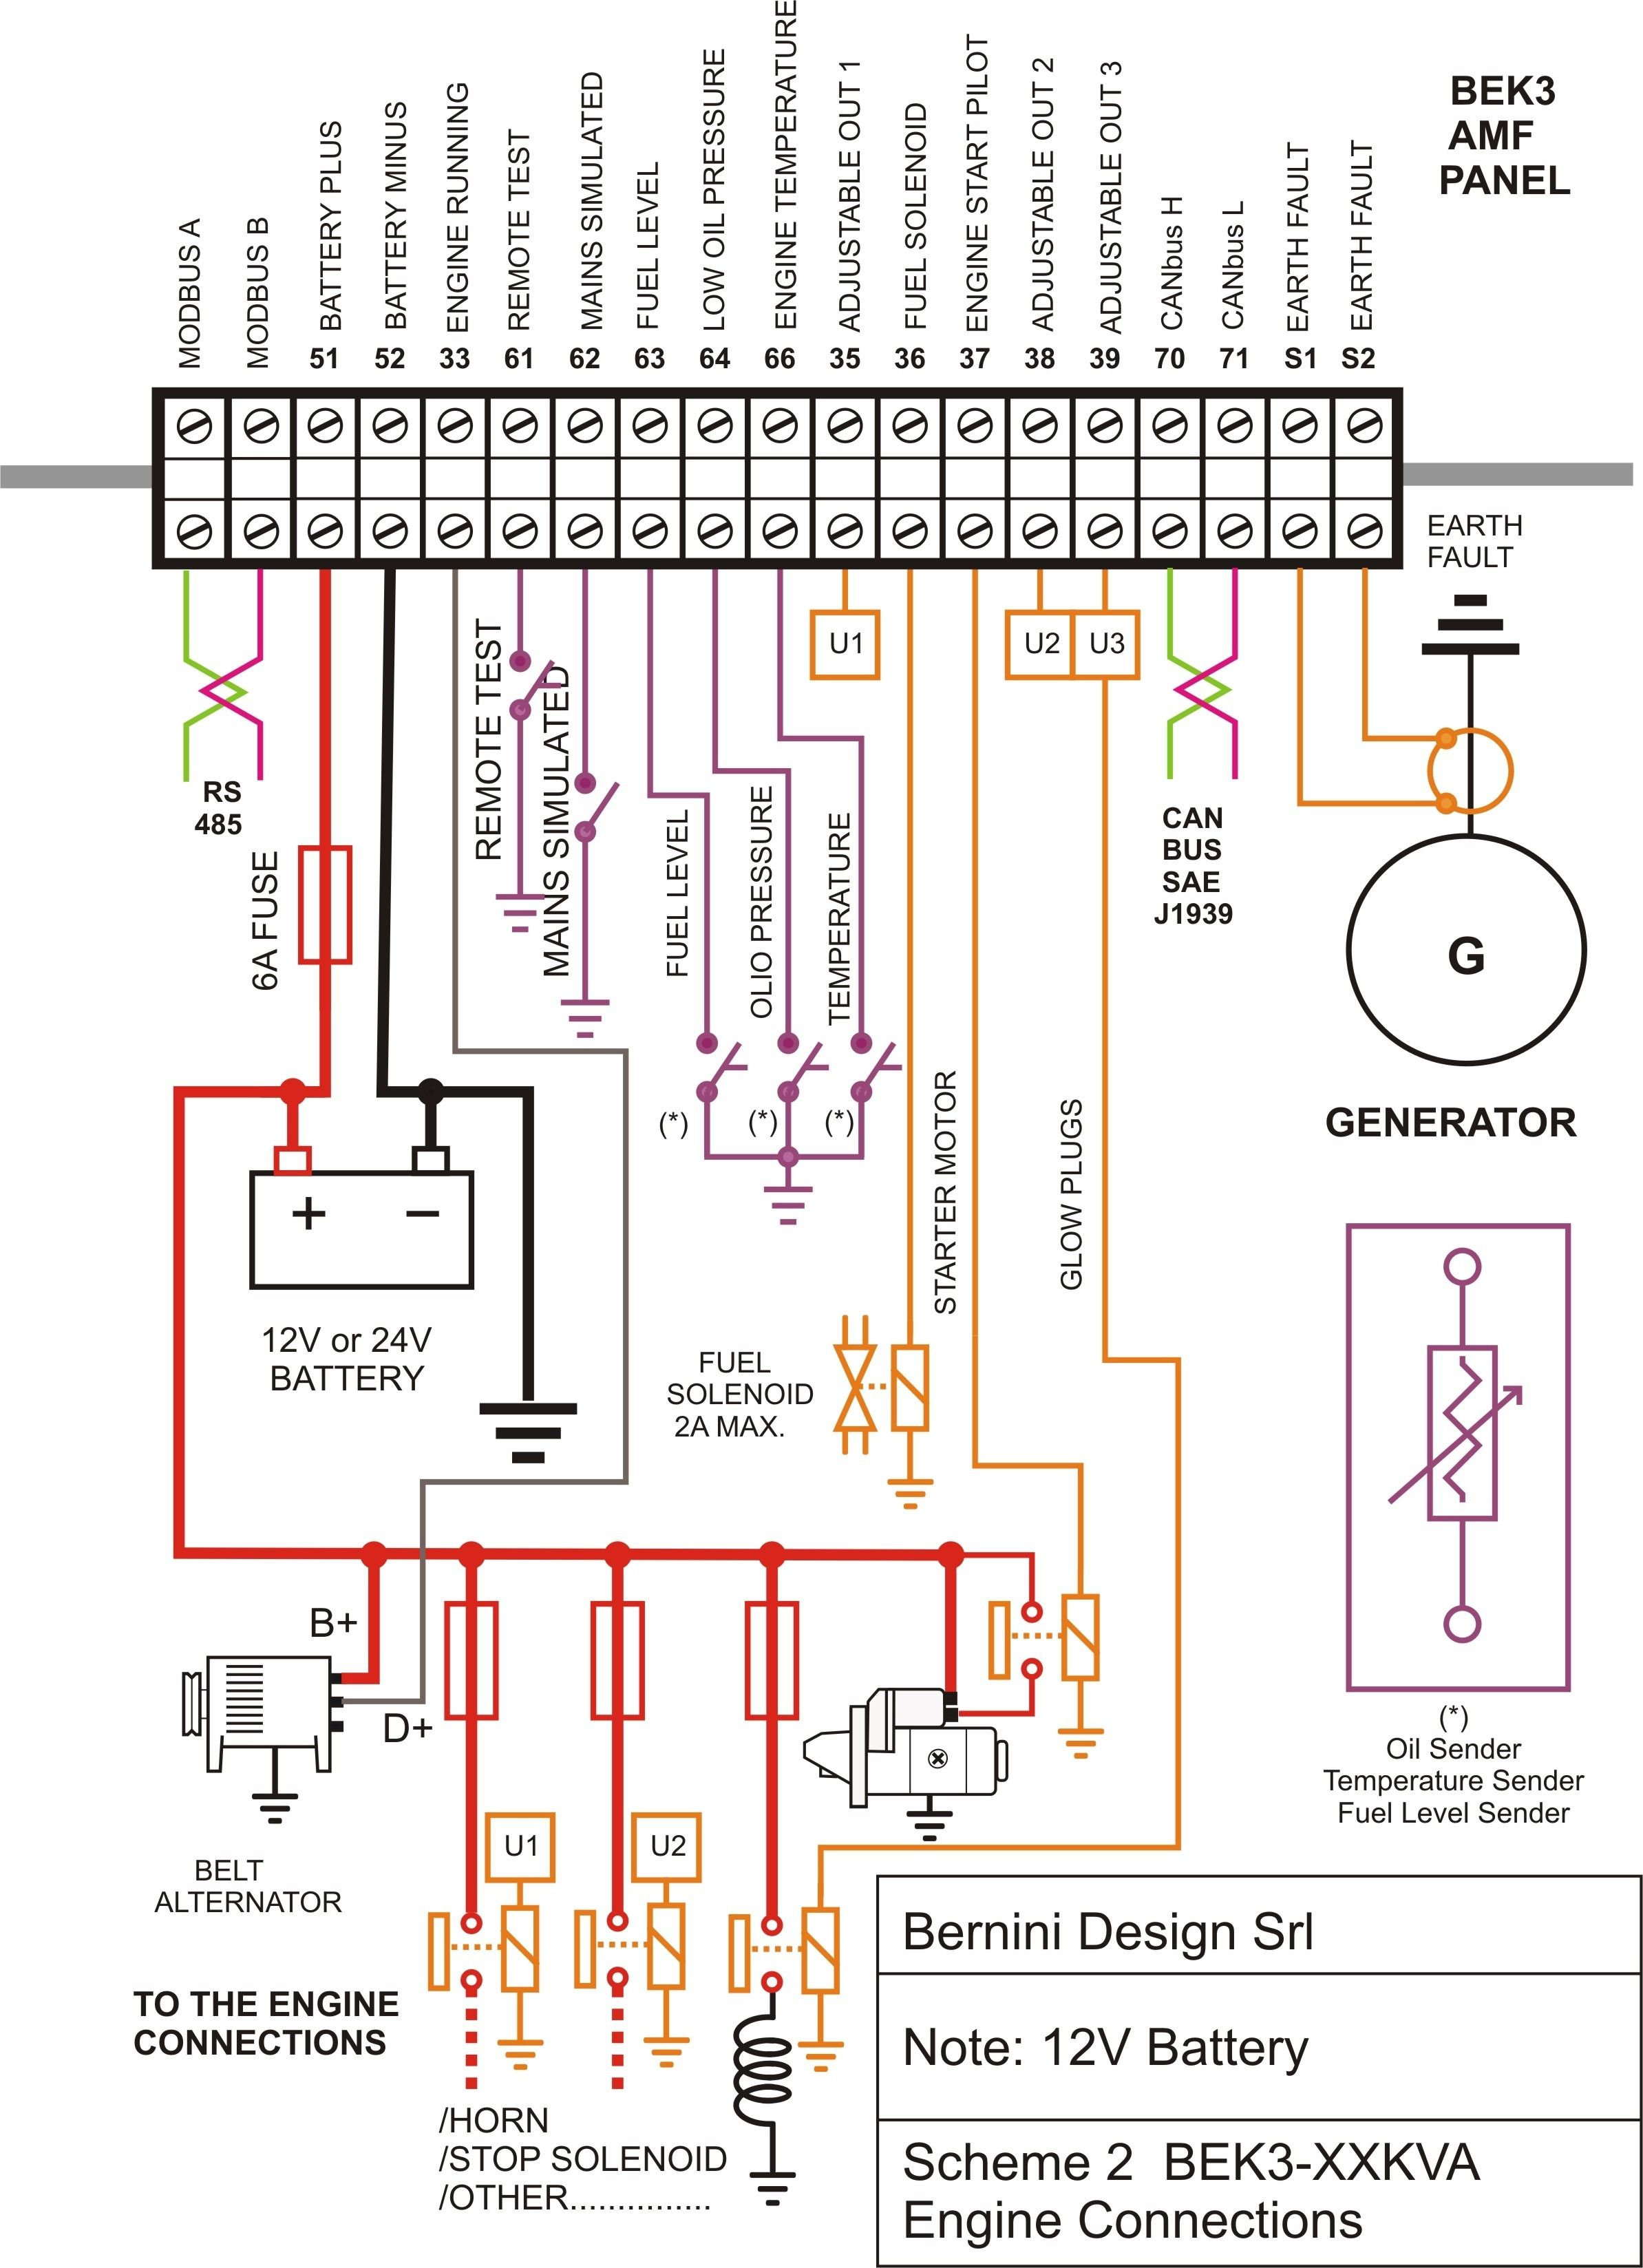 Basic Electrical Wiring Diagram Pdf Wiringdiagram Org border=